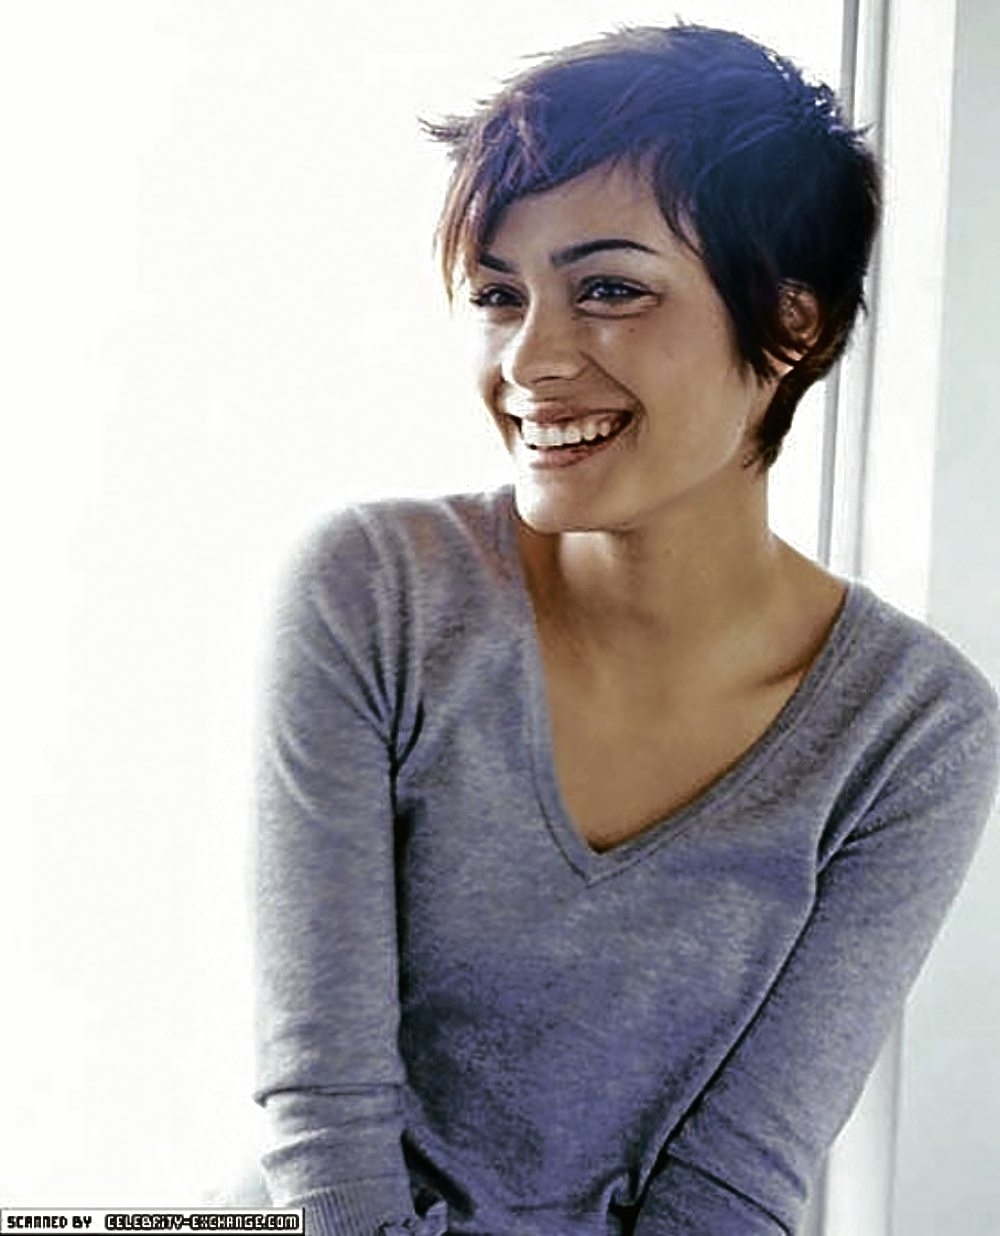 Pixie Haircut For Thick Curly Hair 1000+ Images About Pixie Cut On In Best And Newest Pixie Hairstyles For Thick Coarse Hair (View 9 of 16)